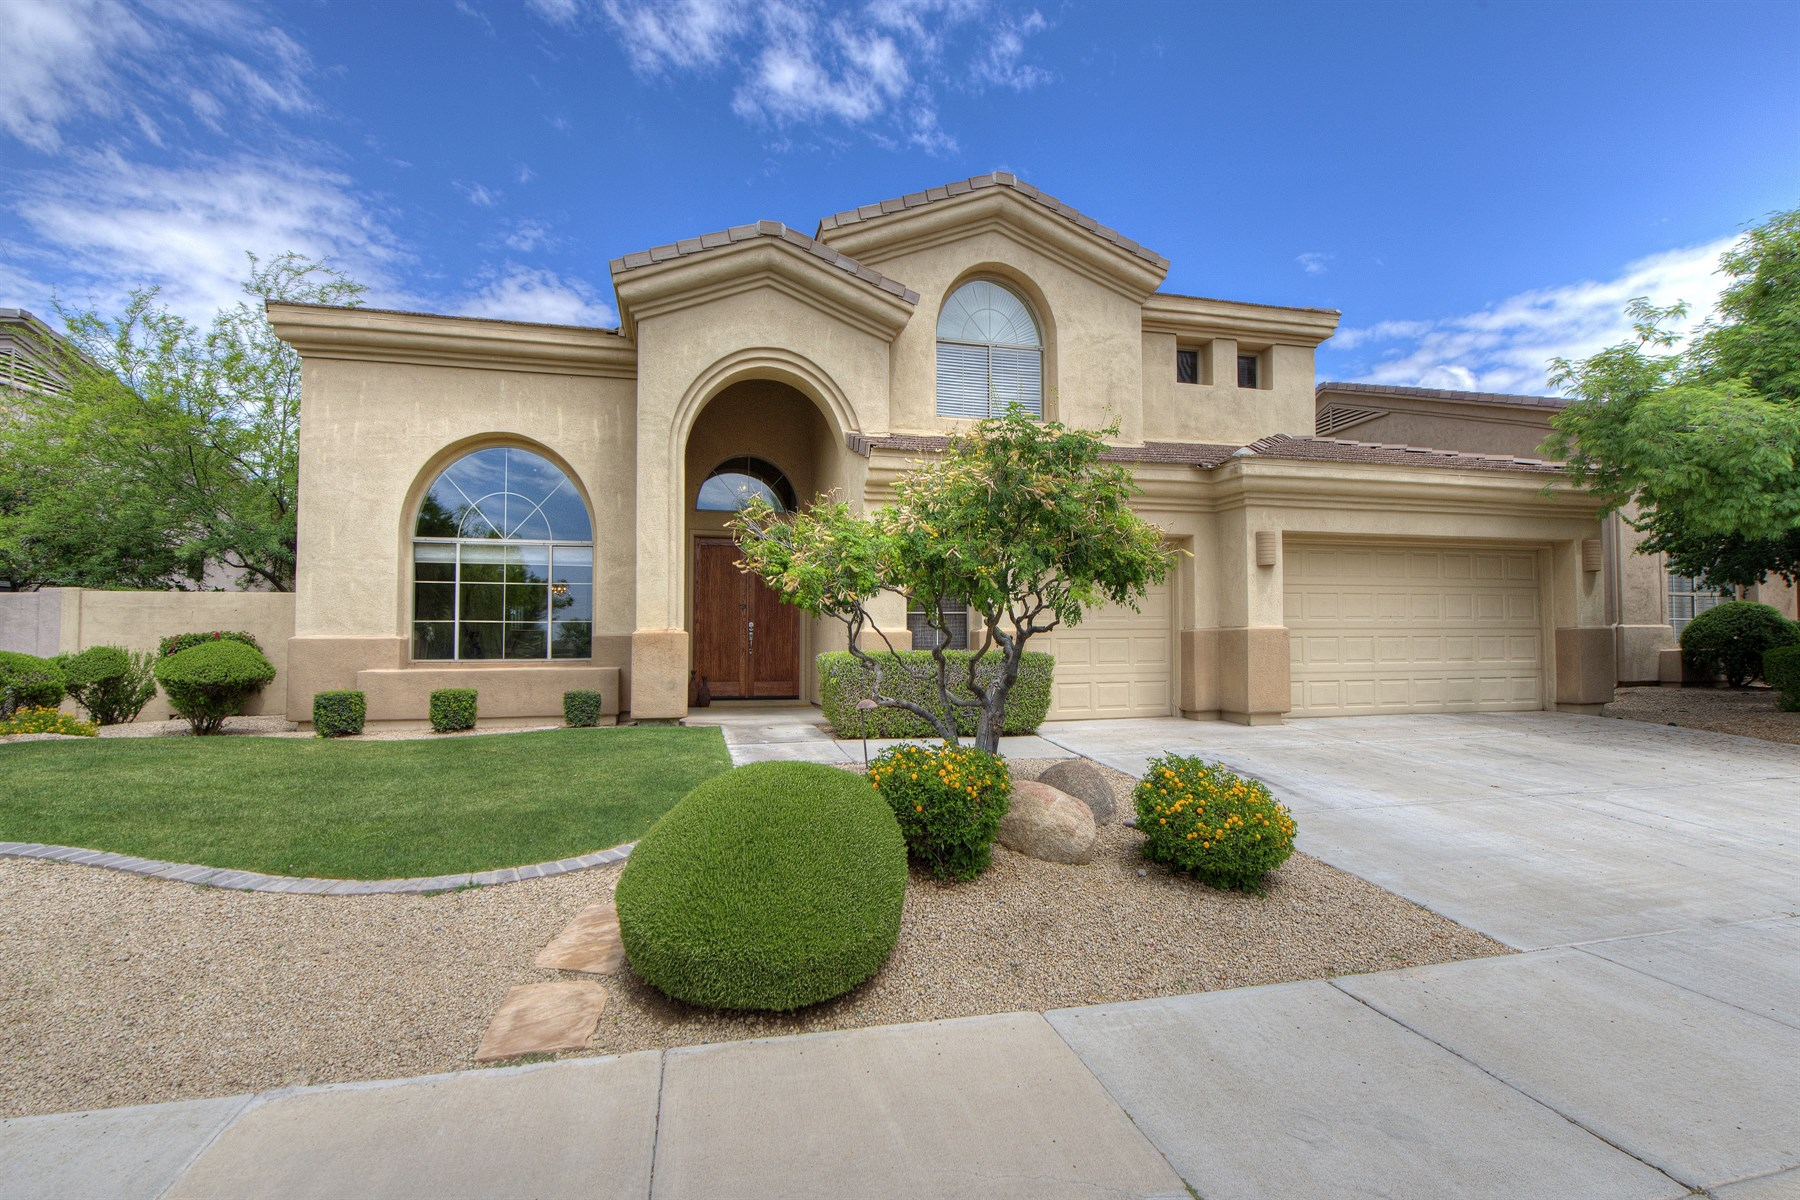 Property For Sale at Fantastic Newly Renovated highly popular Talovera model in Grayhawk